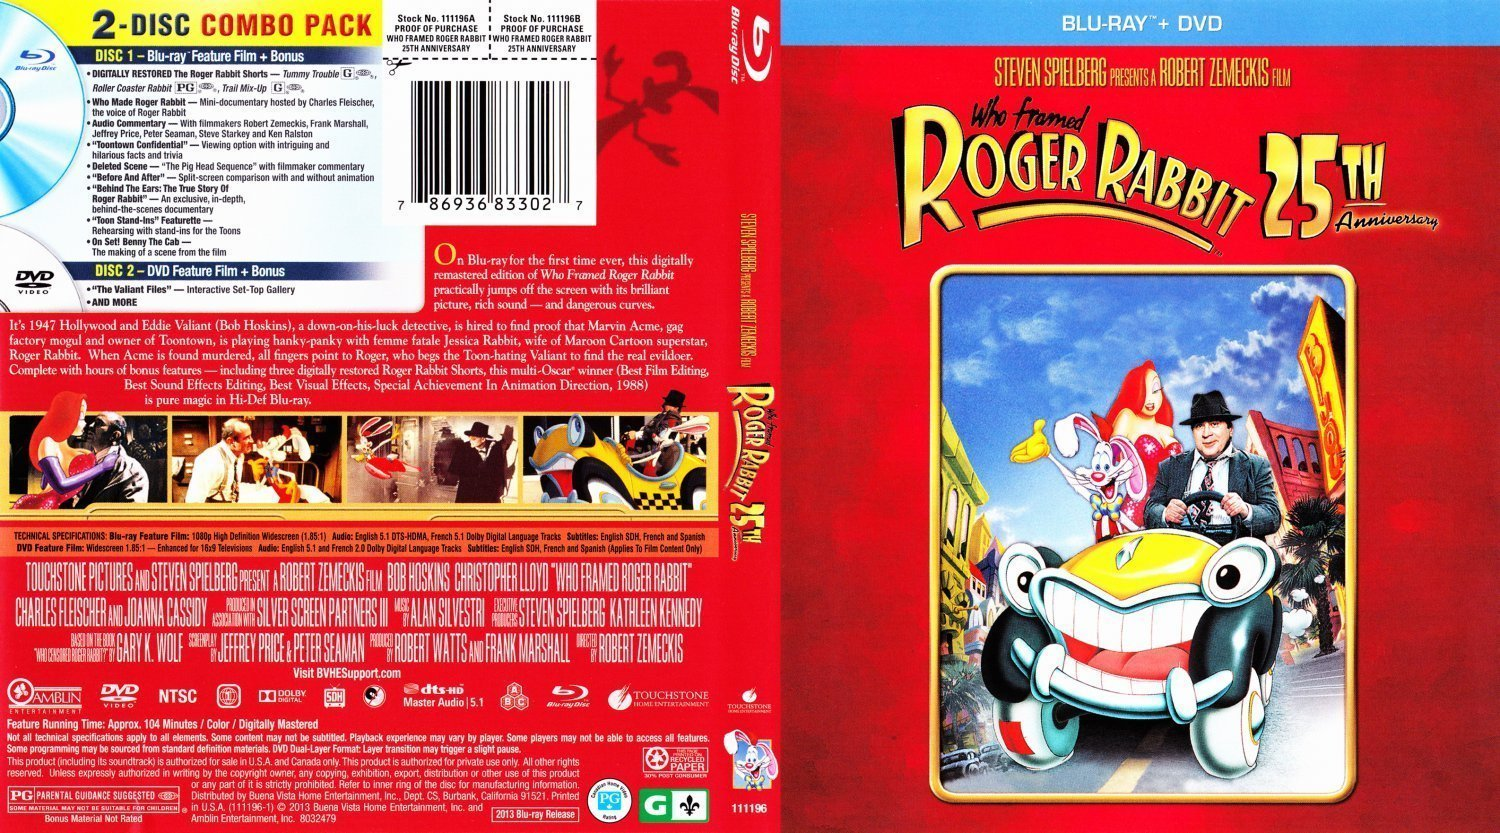 dvd cover who framed roger rabbit 25th anniversary edition